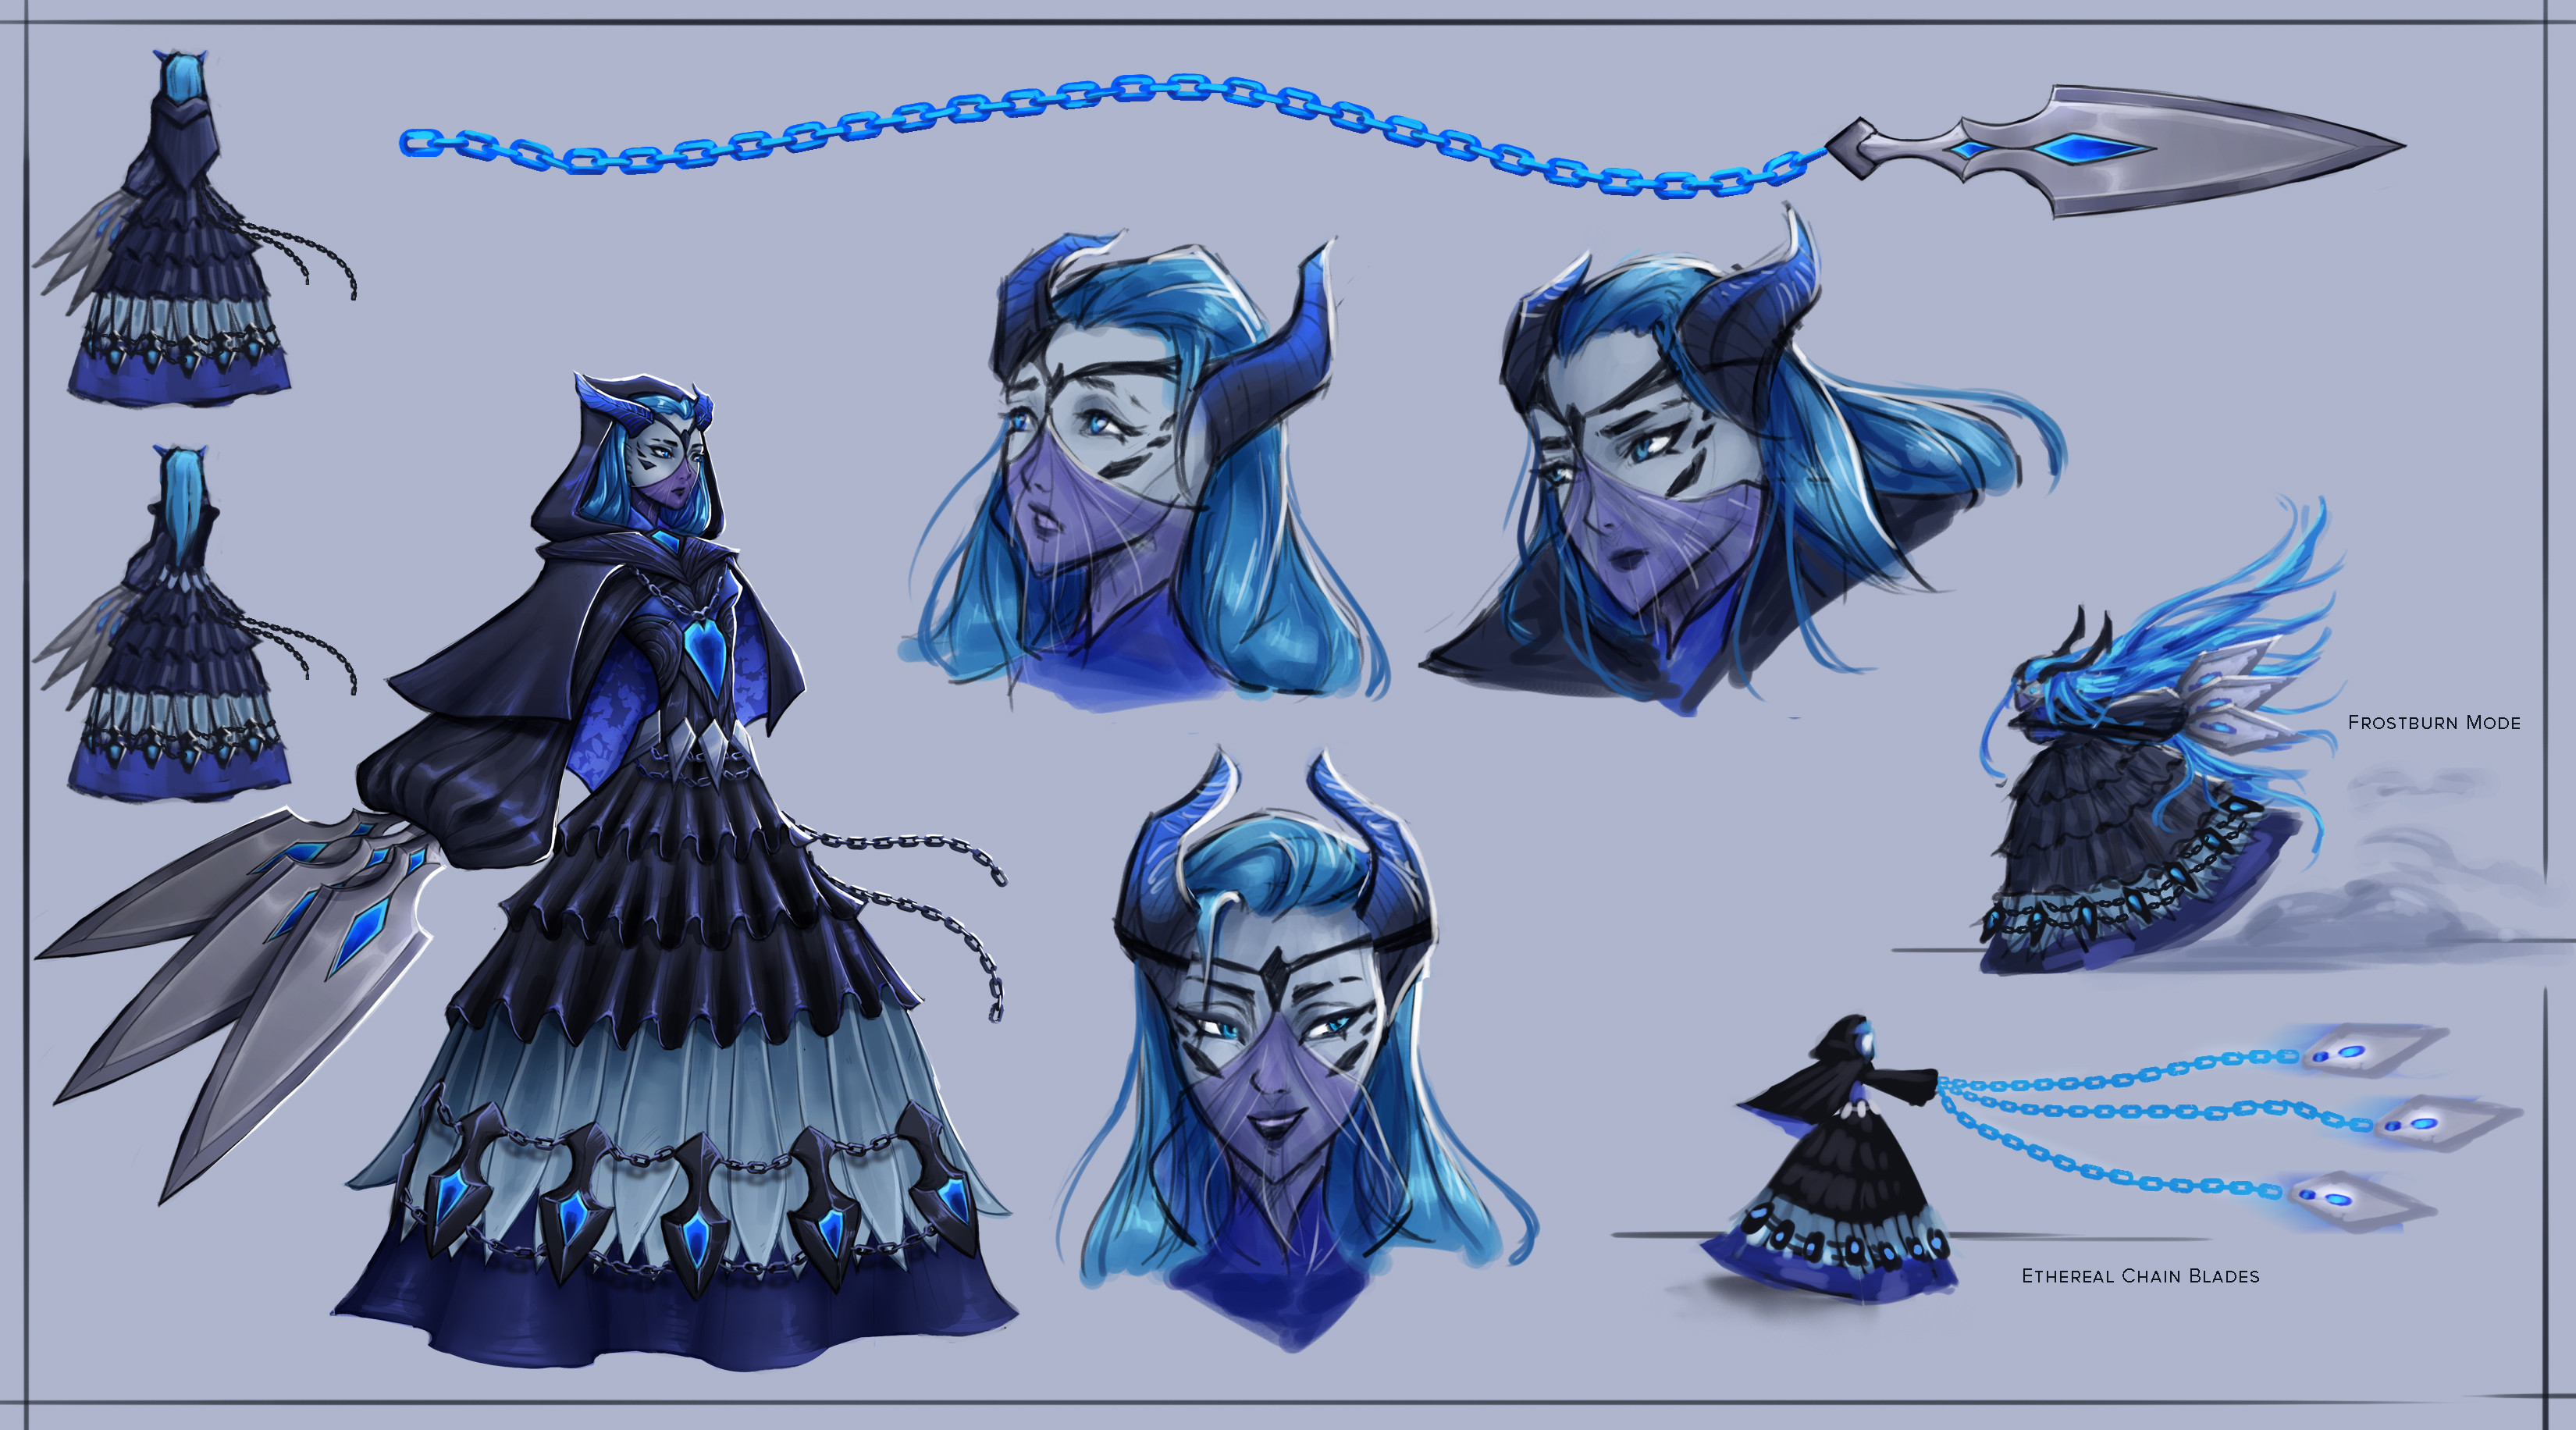 Ra'Lorel [2/2] Concept sheet complete with back view, chain blades, poses, and expressions